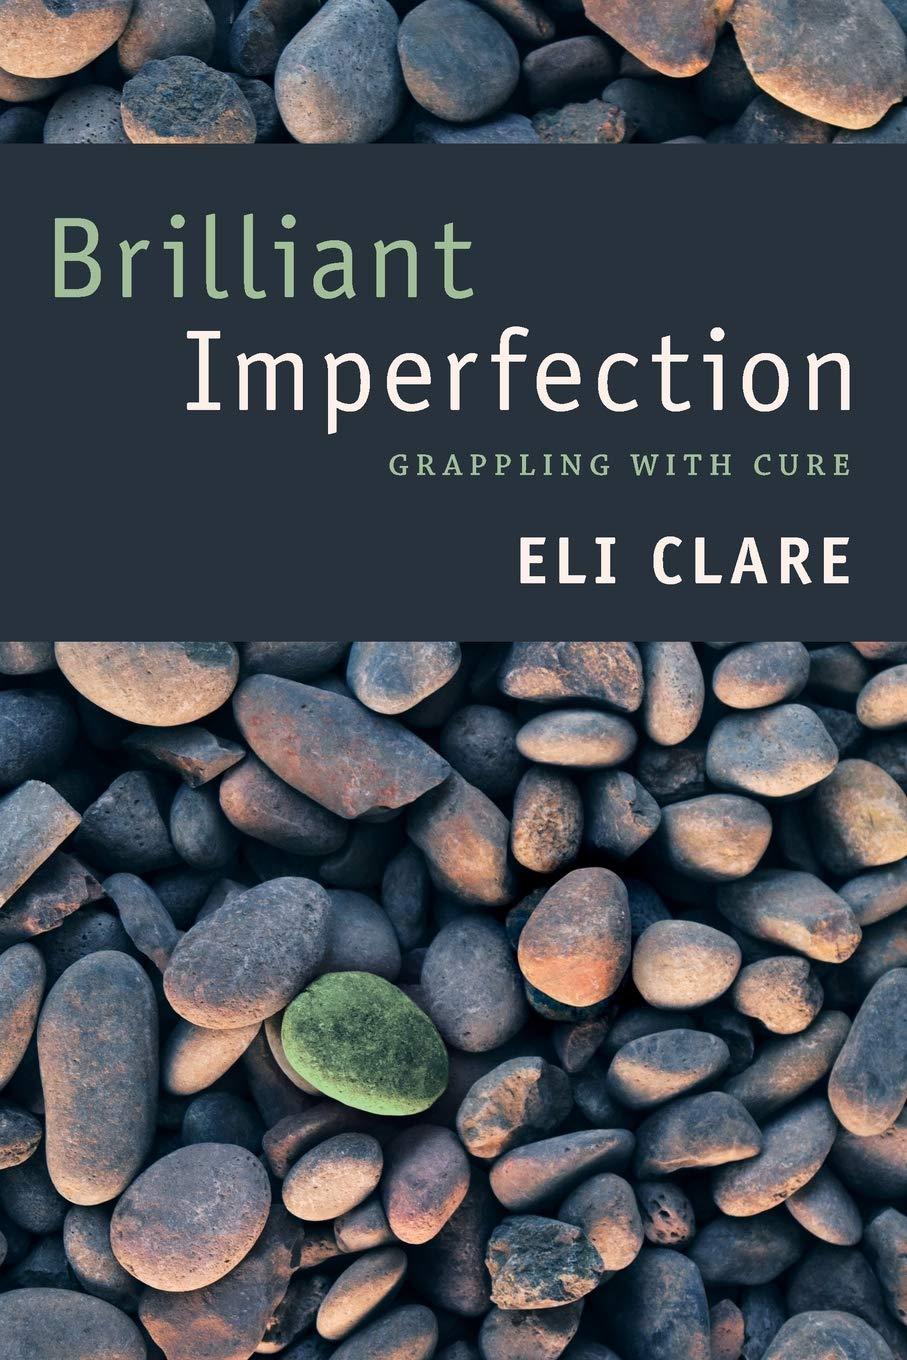 Download Brilliant Imperfection: Grappling With Cure 